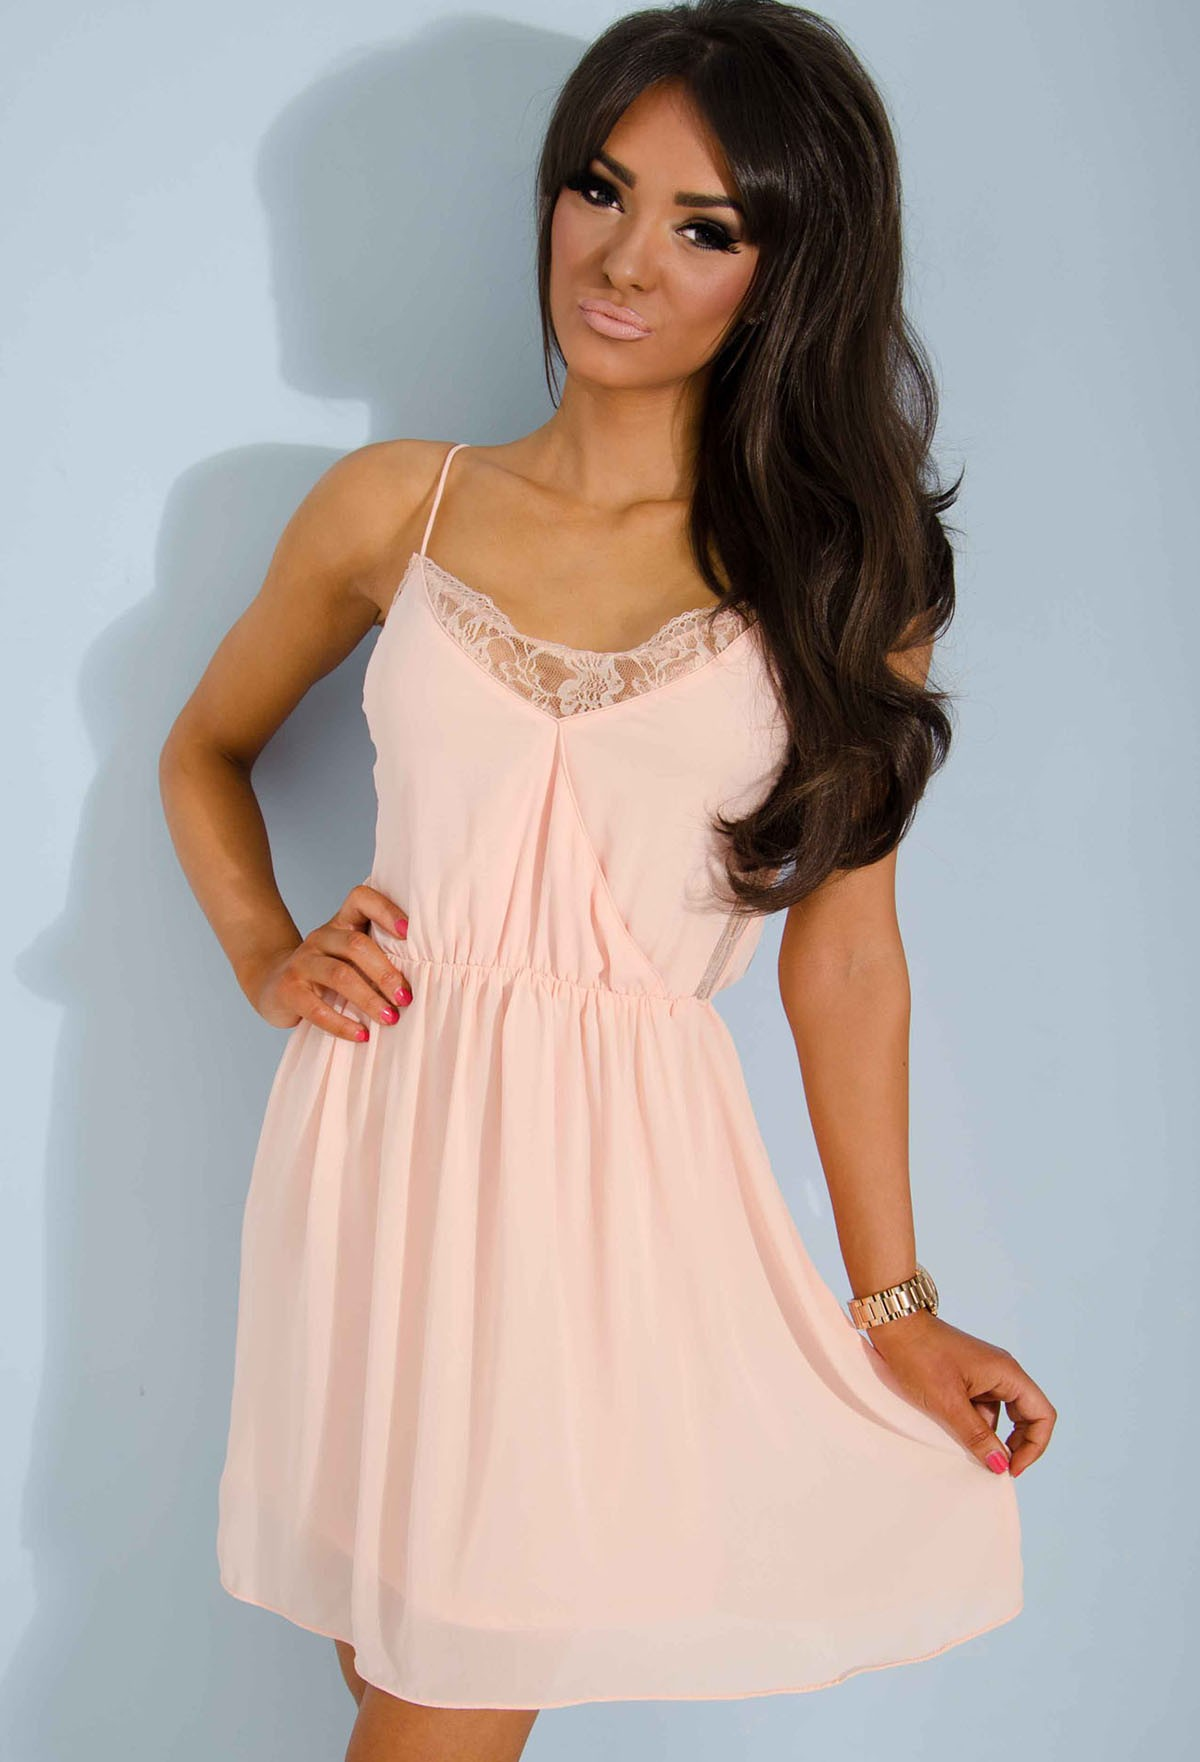 Libre Peach Chiffon and Lace Detail Mini Dress | Pink Boutique